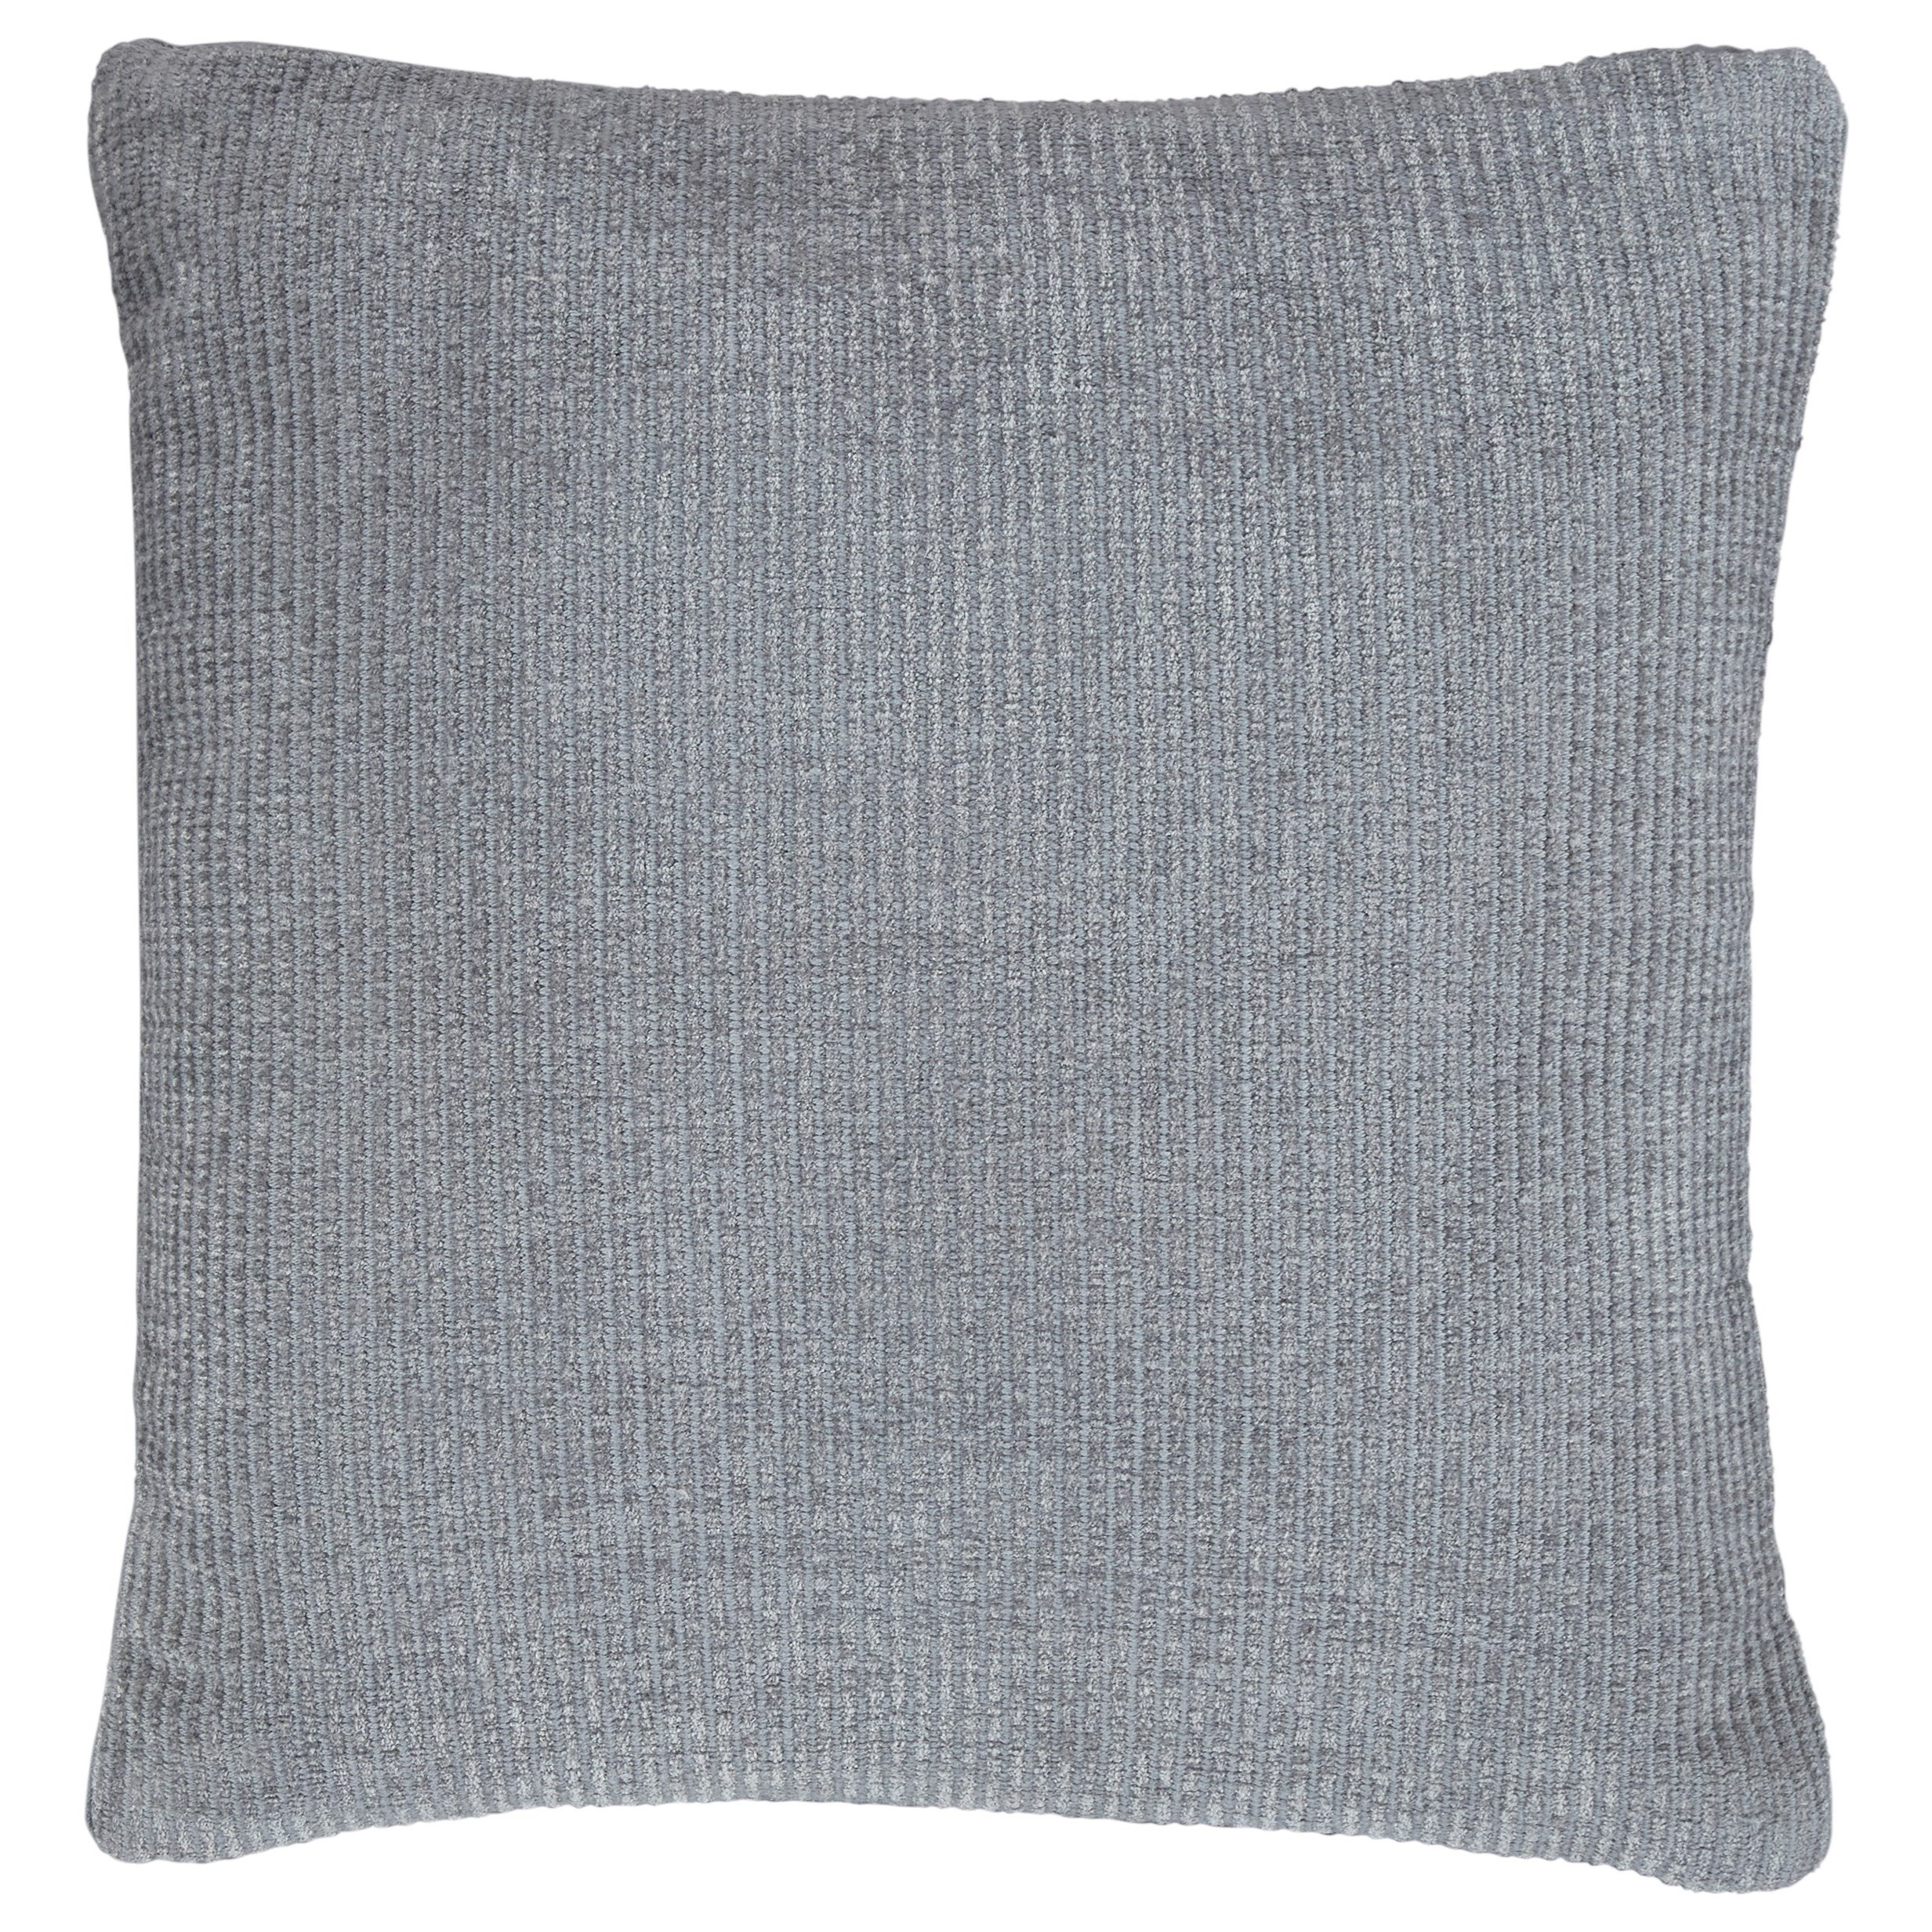 Pillows Larae Gray Pillow by Signature Design at Fisher Home Furnishings